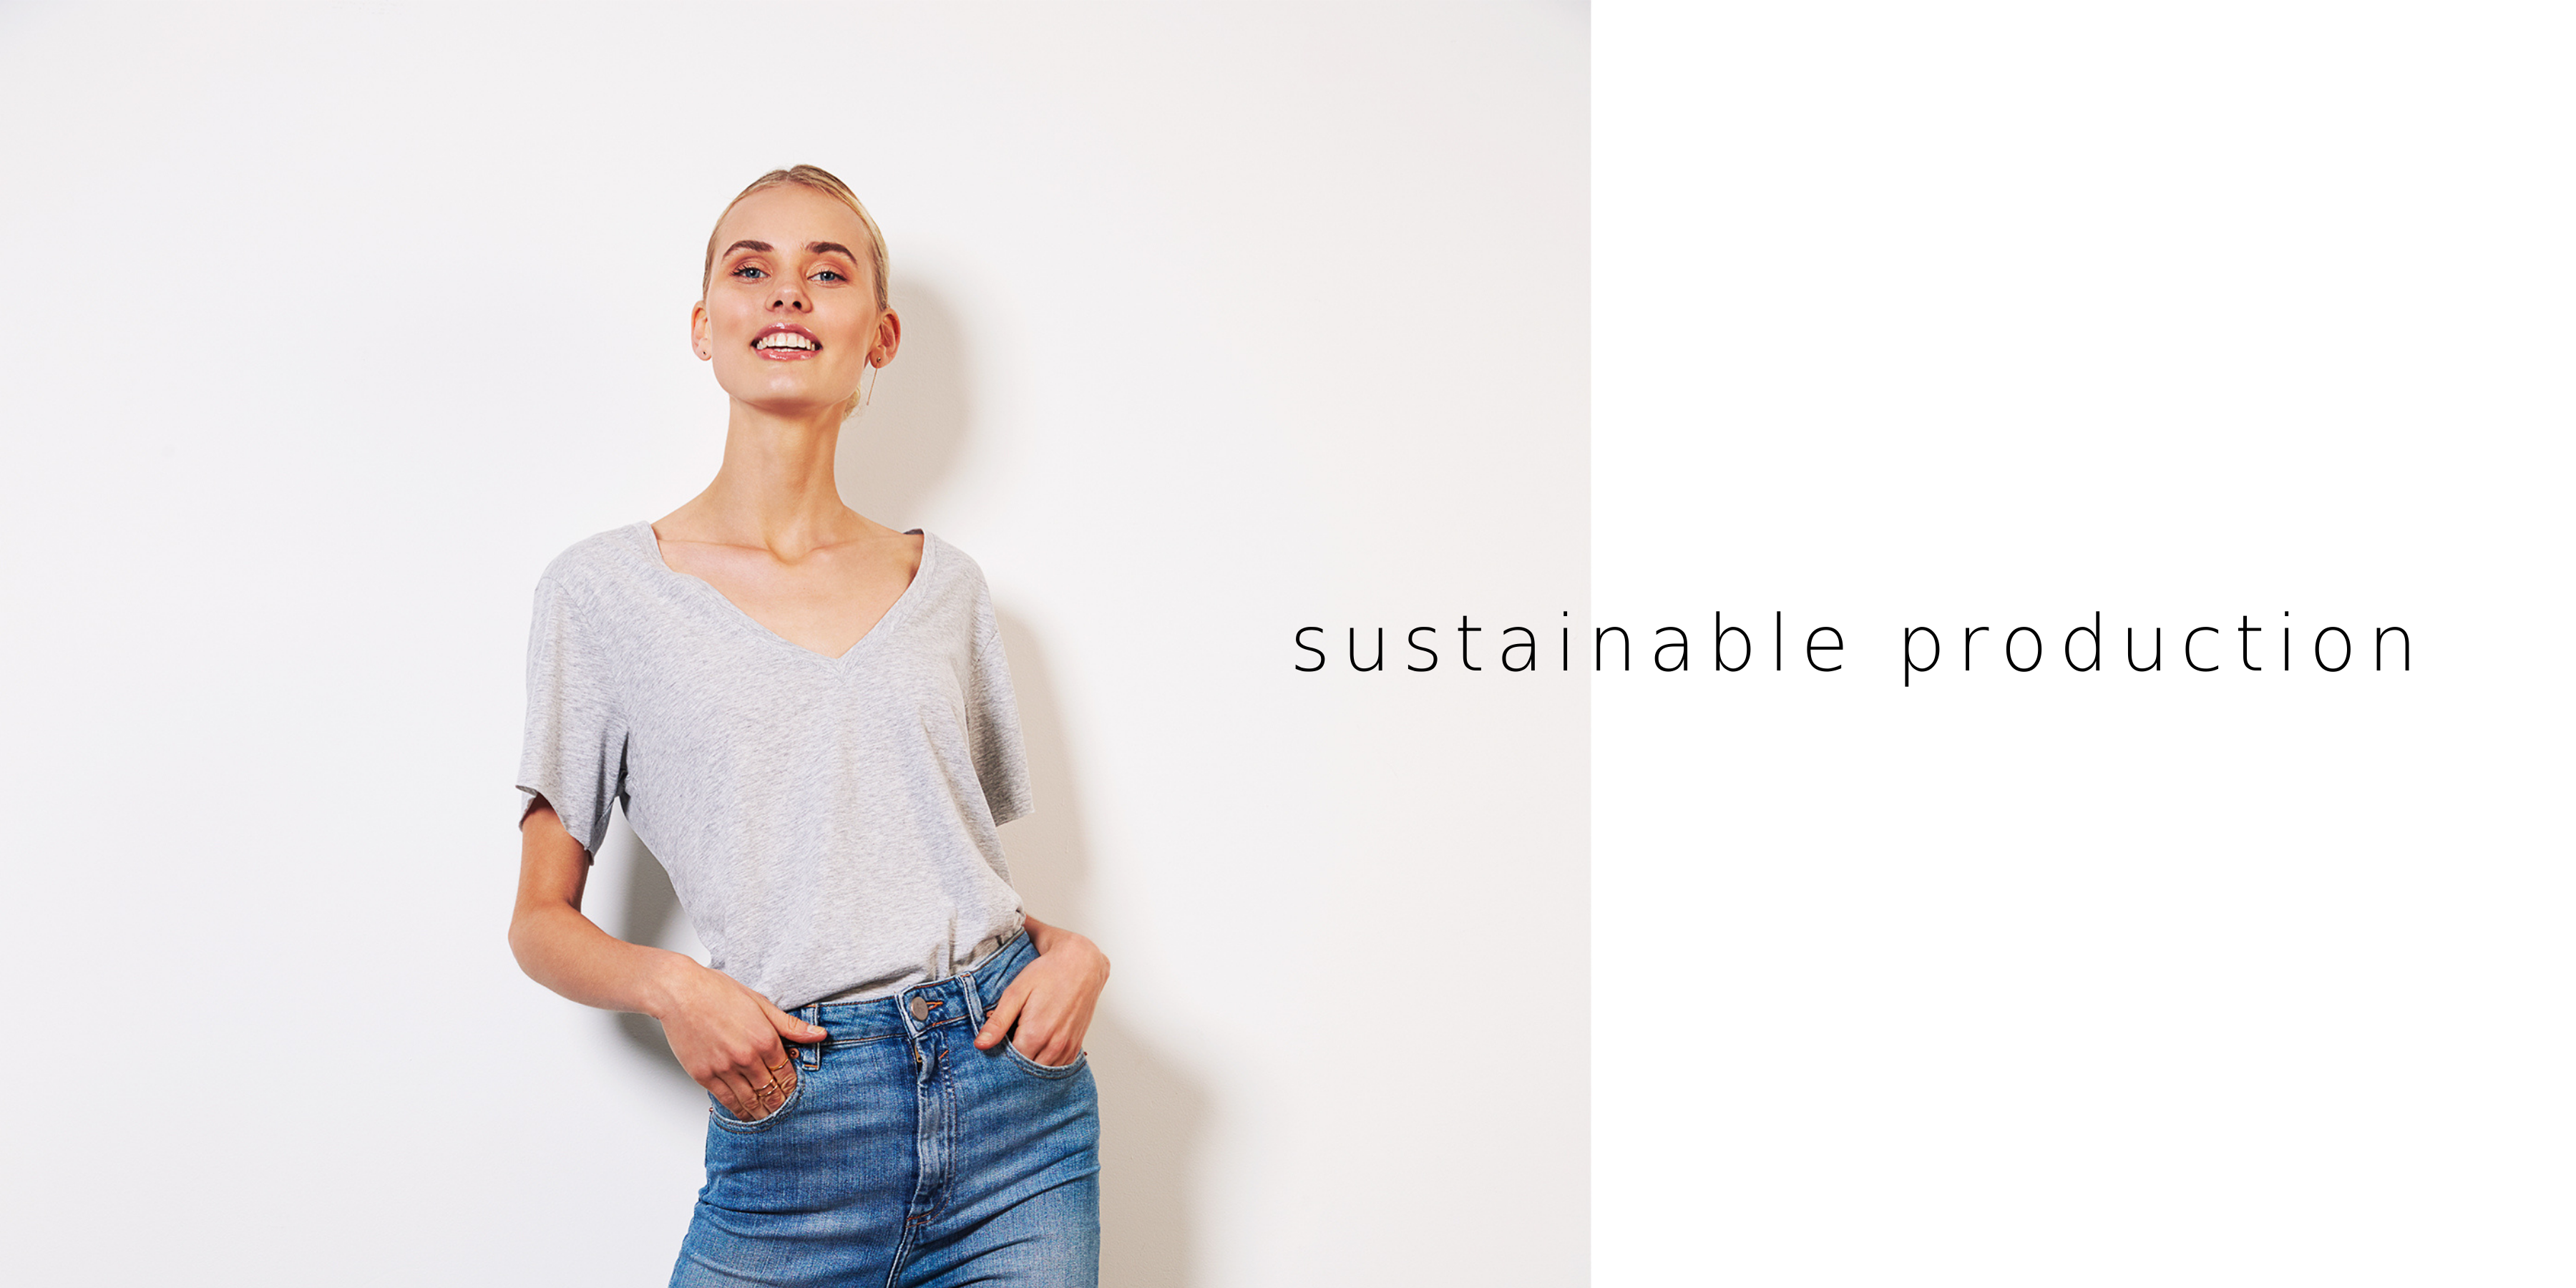 bon label uses only gots certified organic cotton